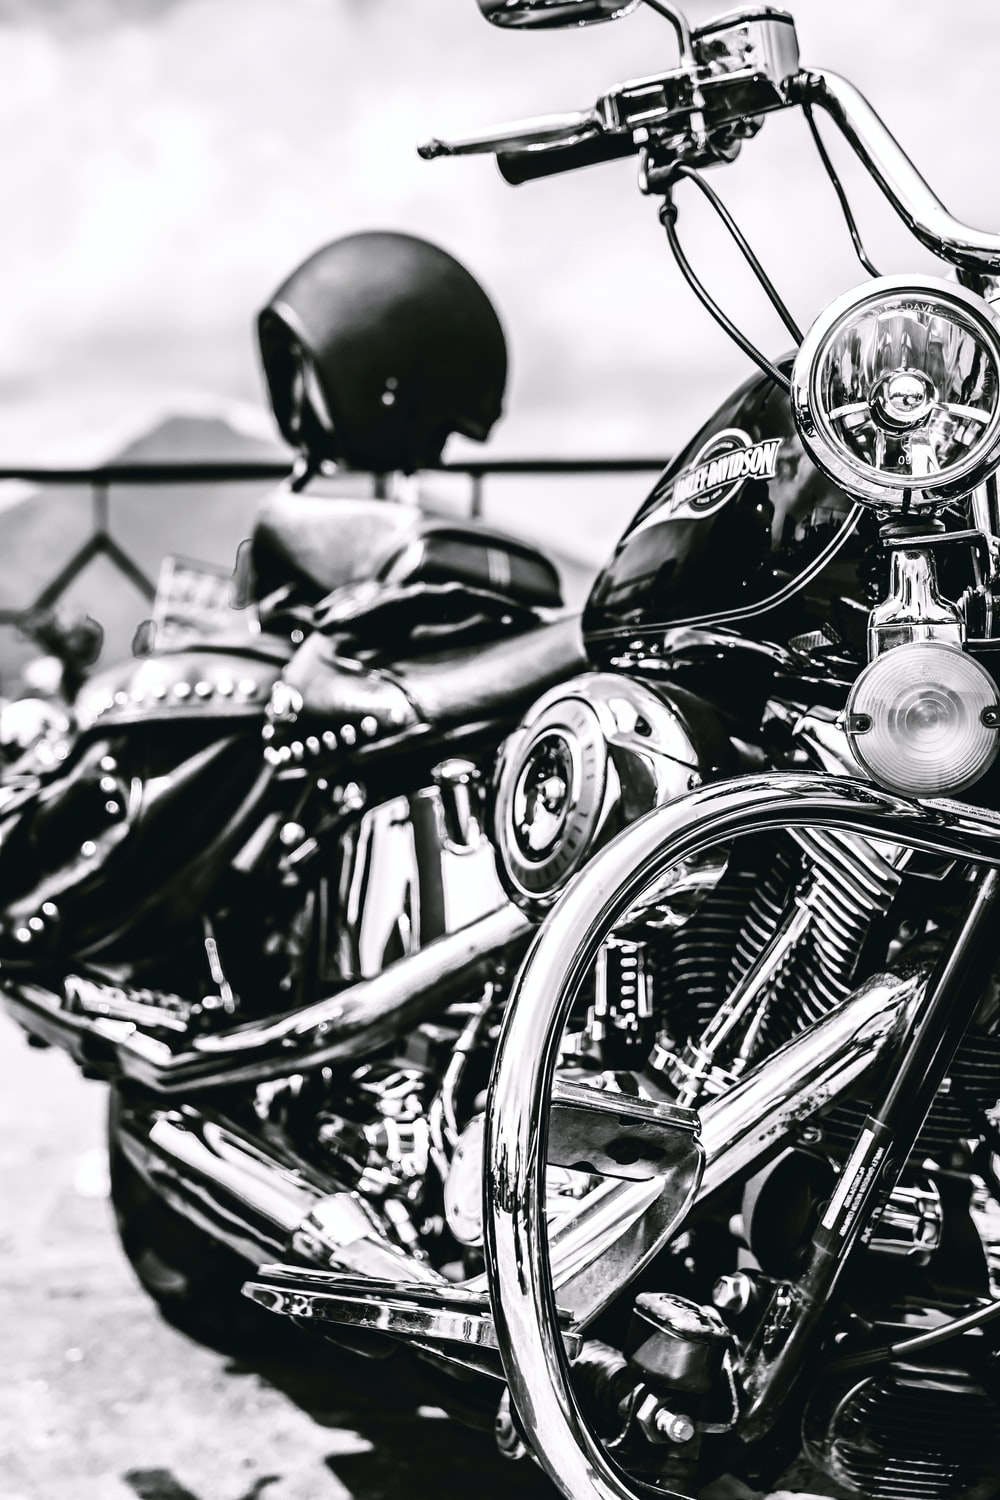 black motorcycle in grayscale photo